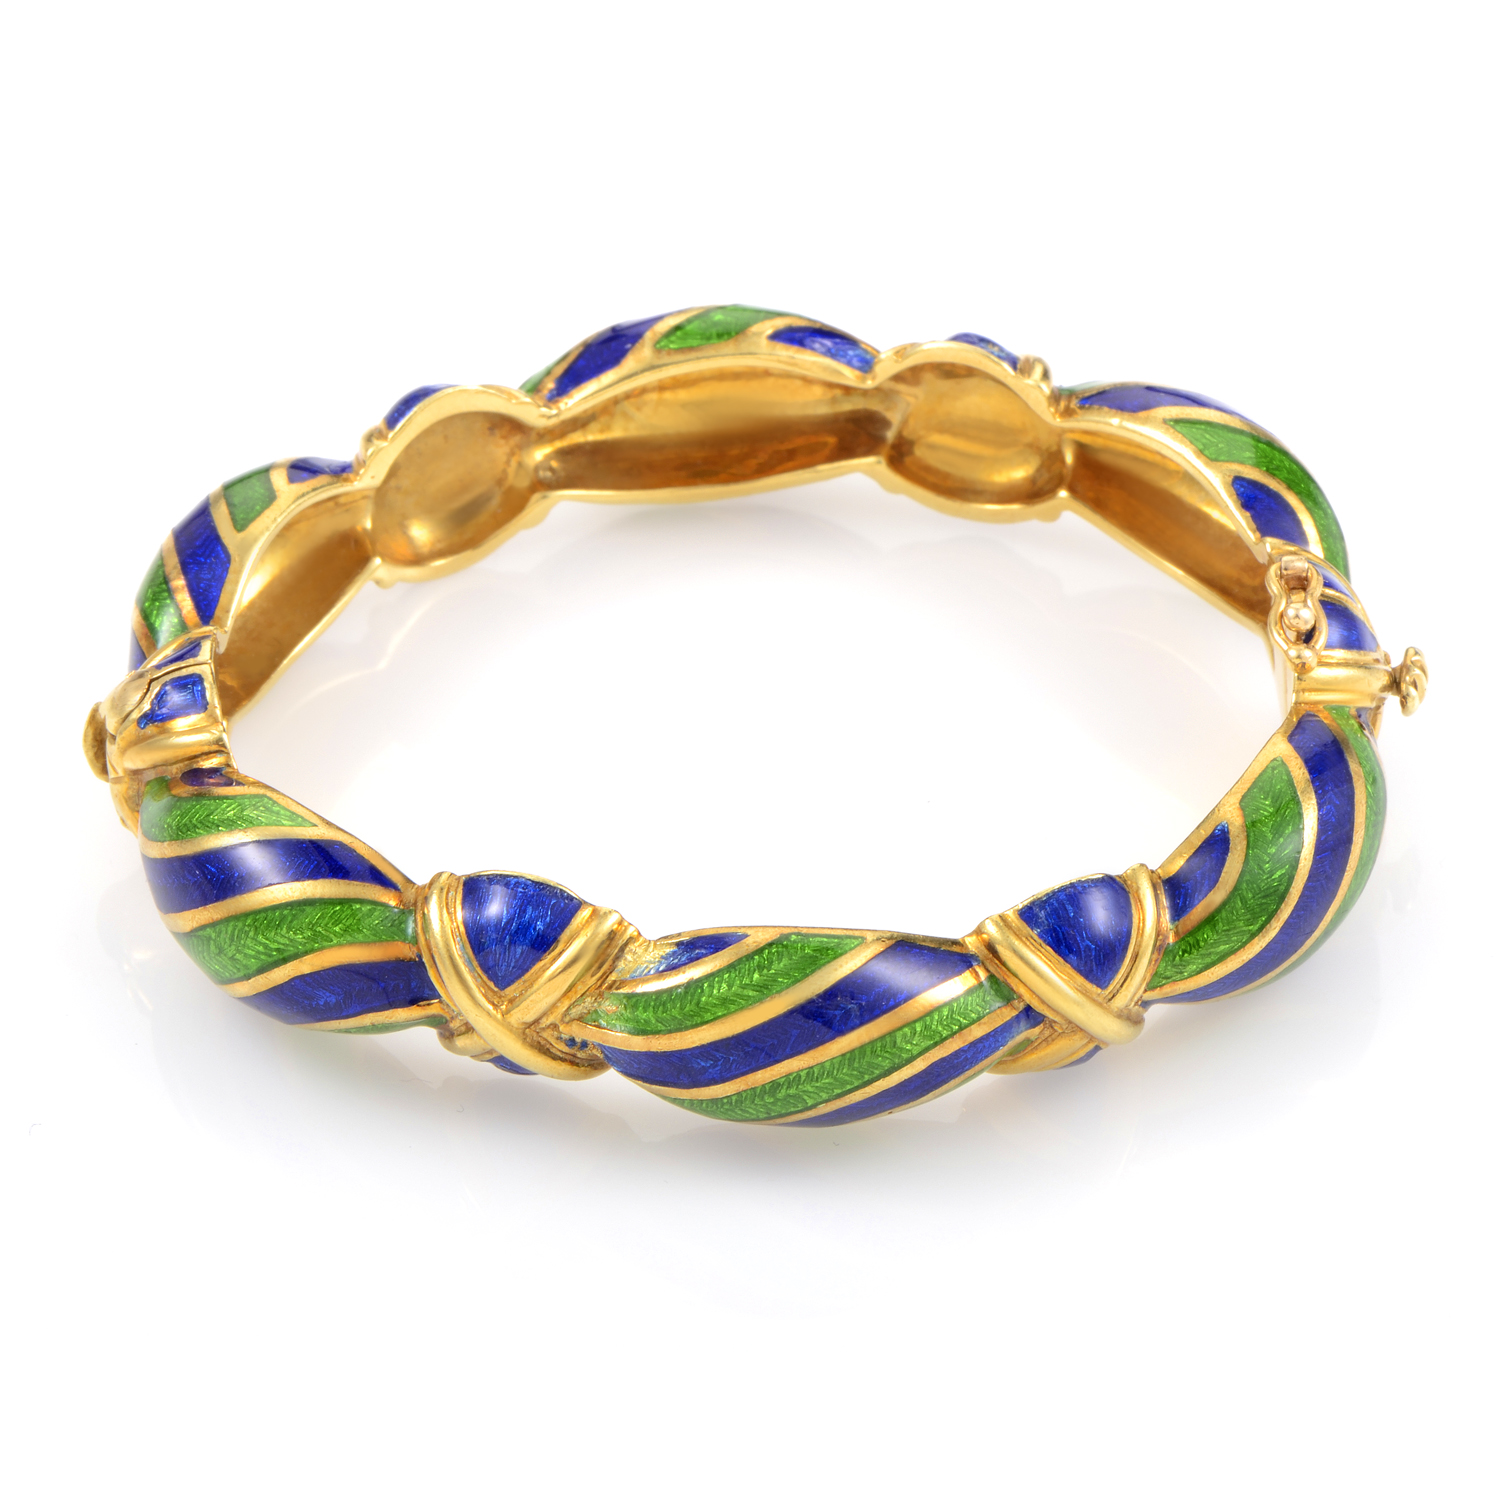 Tiffany & Co. 18K Yellow Gold Blue & Green Enamel Bracelet